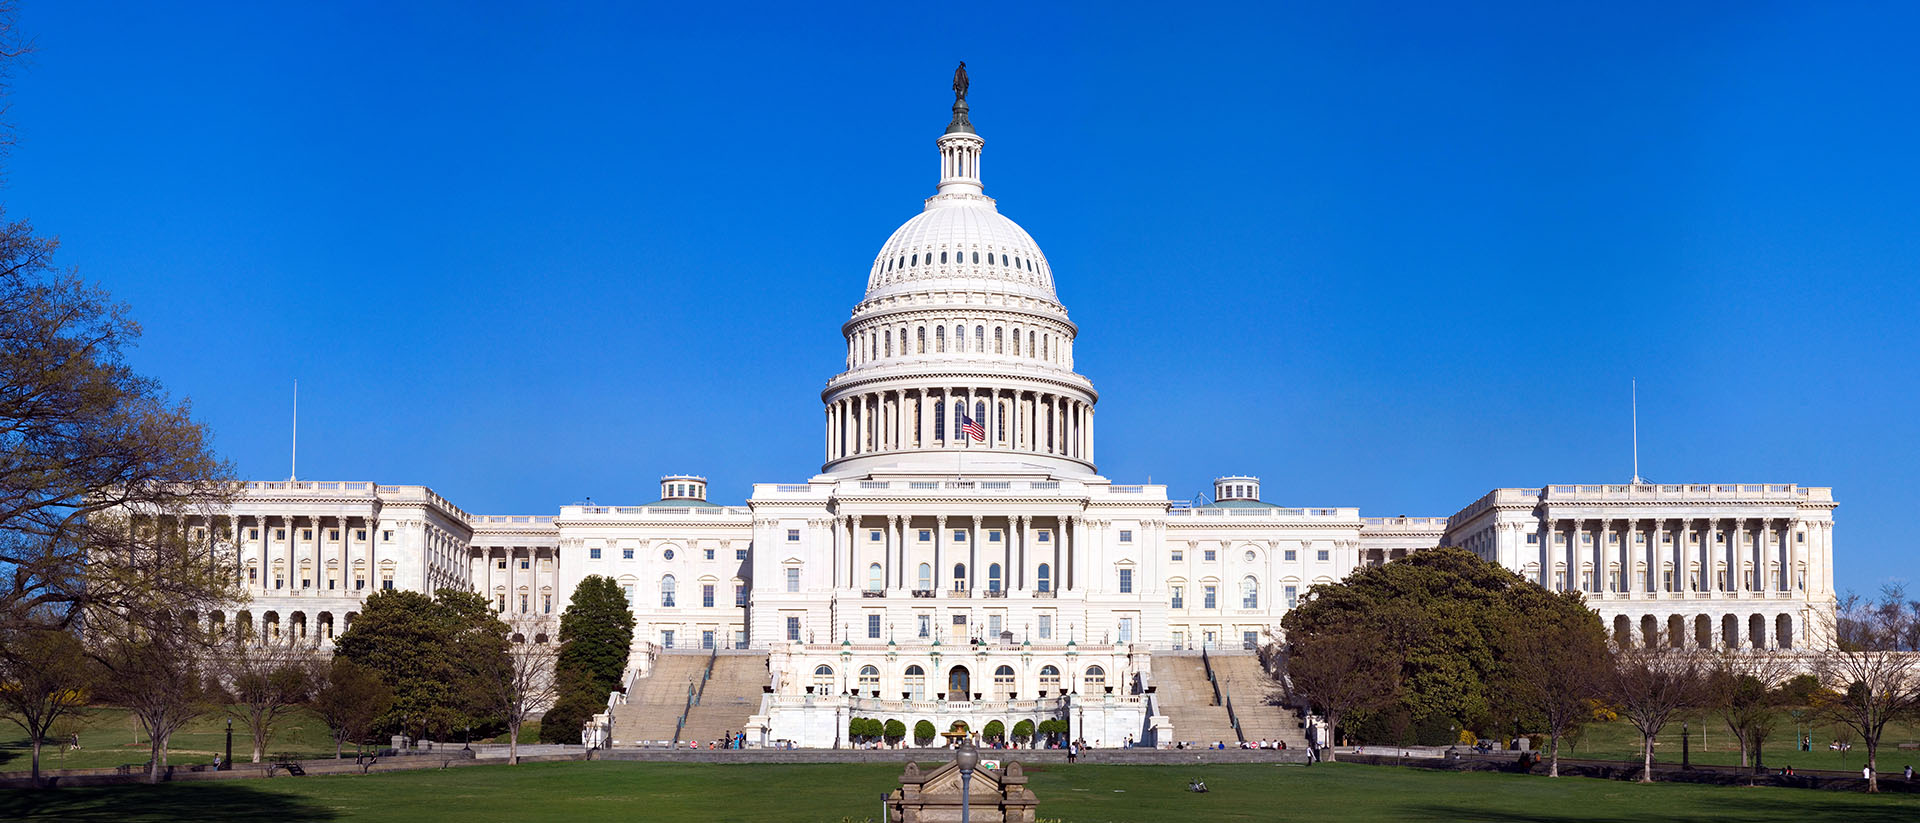 The Capitol Building - The Congress of the United States